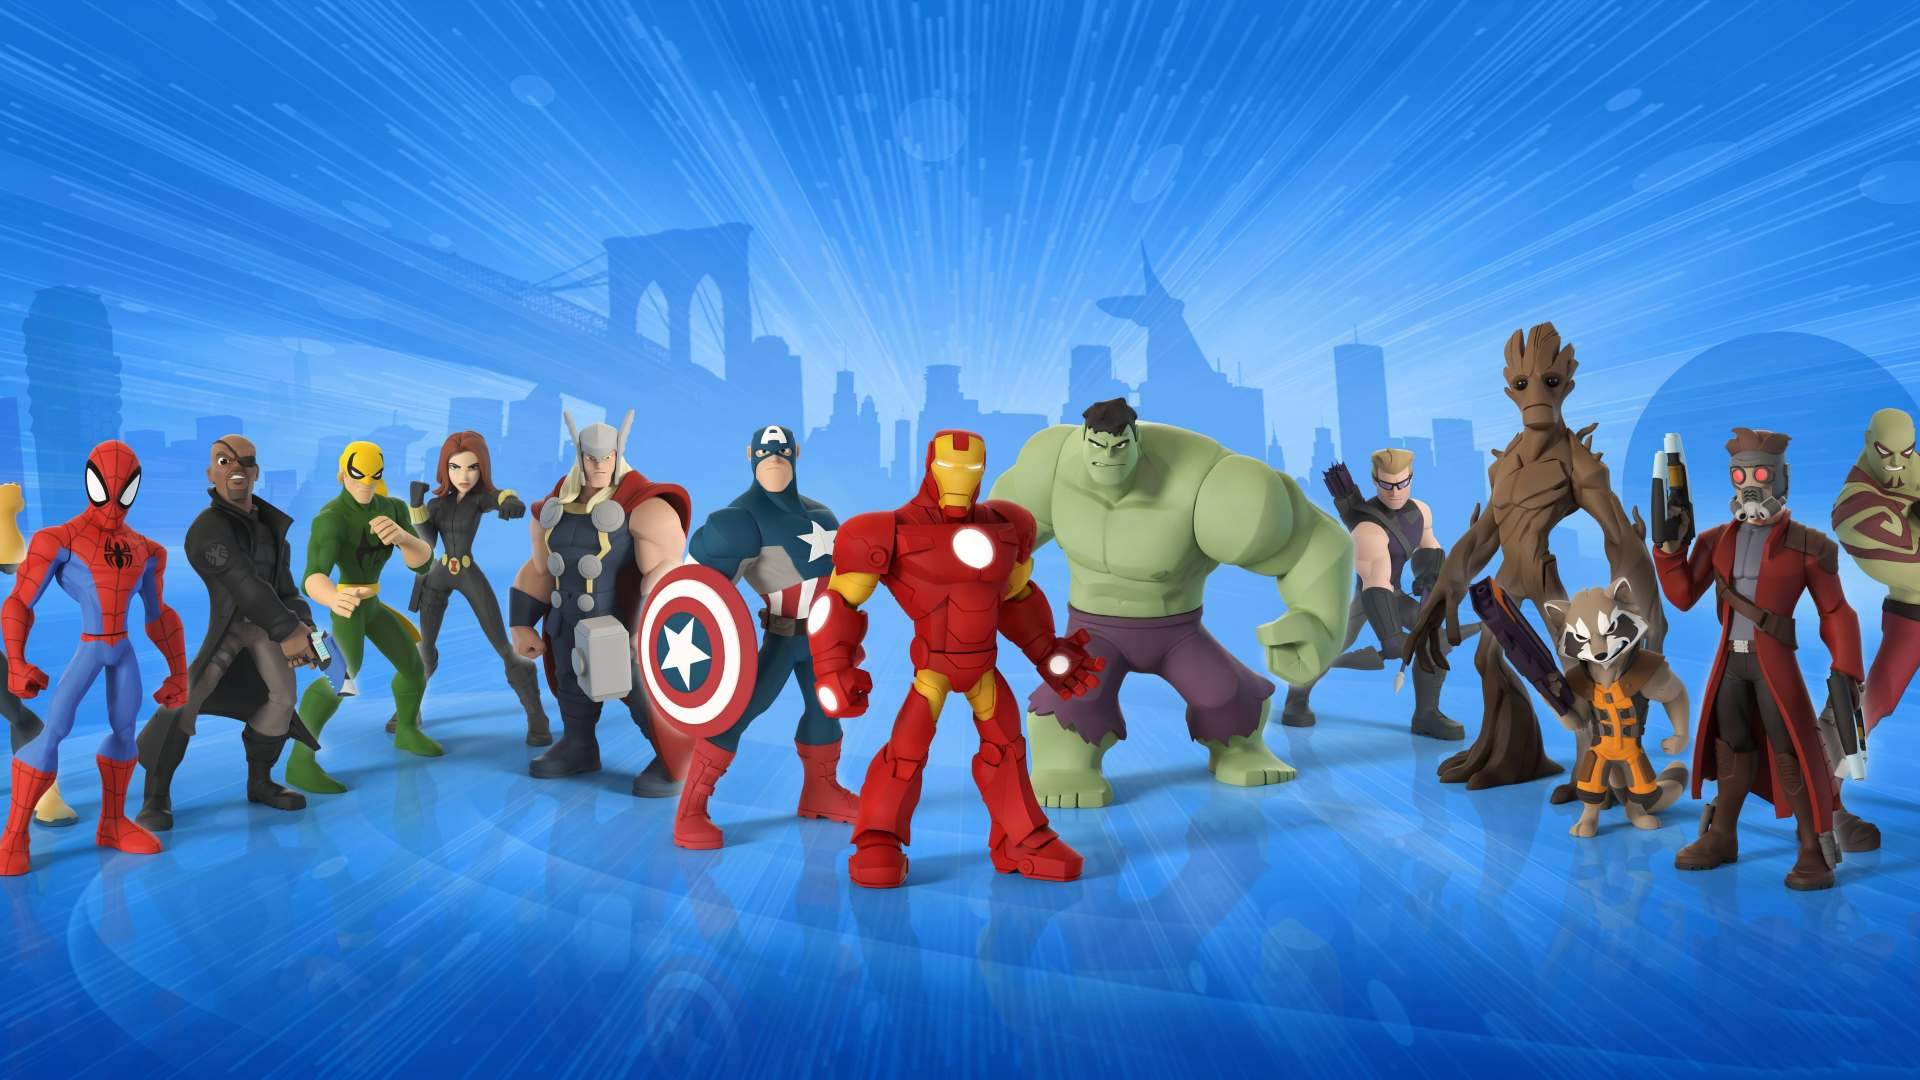 1920x1080 Disney Infinity All Marvel Super Heroes 1080p